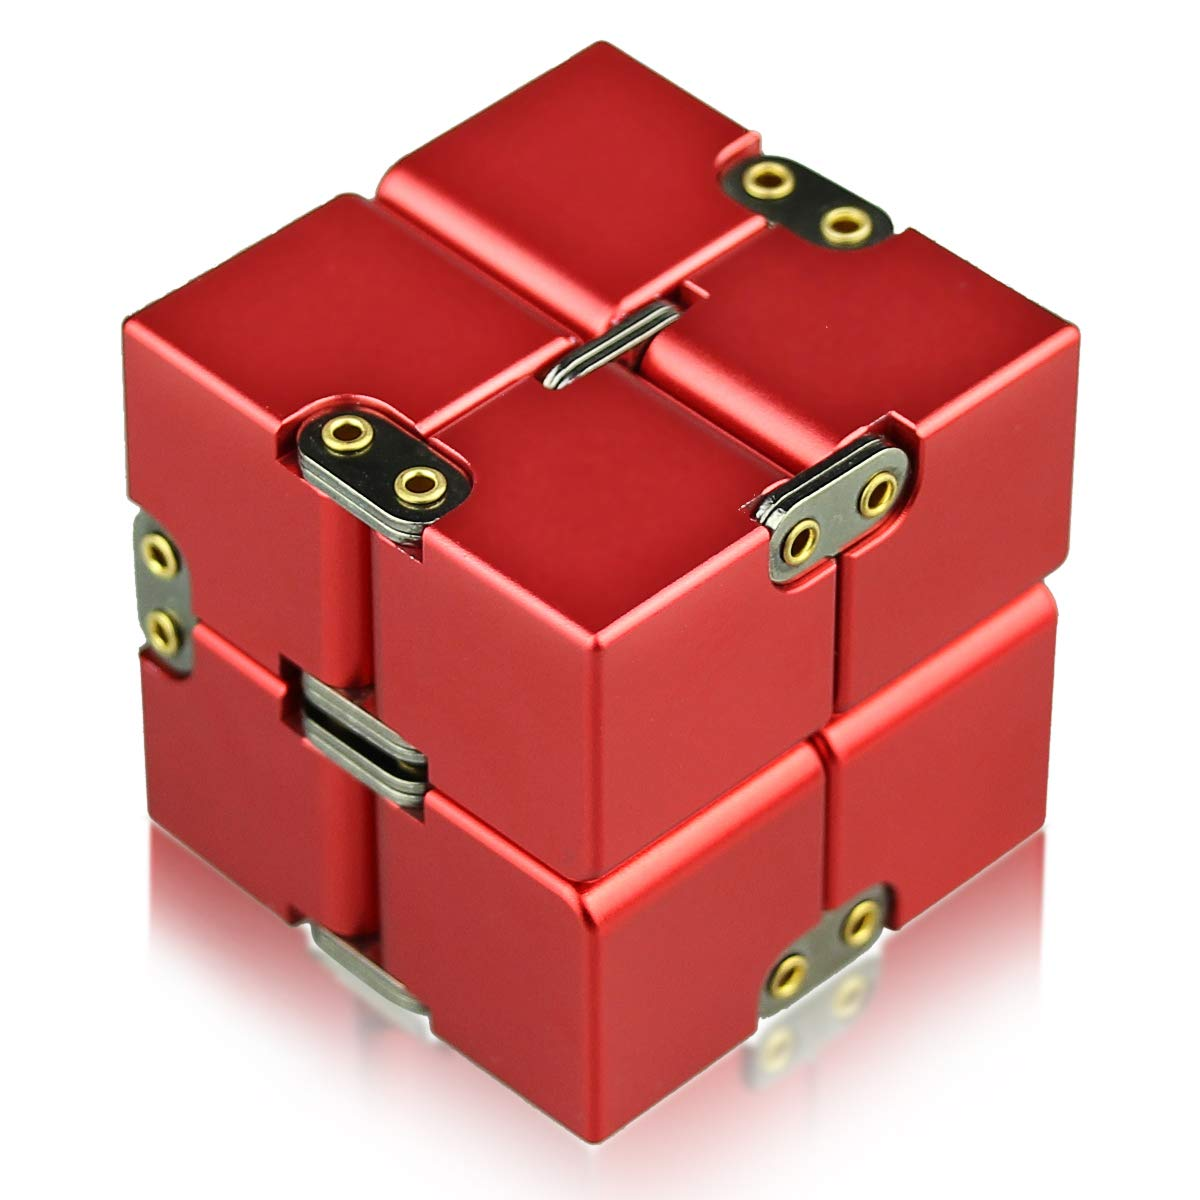 Helesin Infinity Cube Fidget Toys Relaxation Office Stress Reducers ADD, ADHD, Anxiety, Autism Adult & Kids, Aluminium Alloy, Camouflage